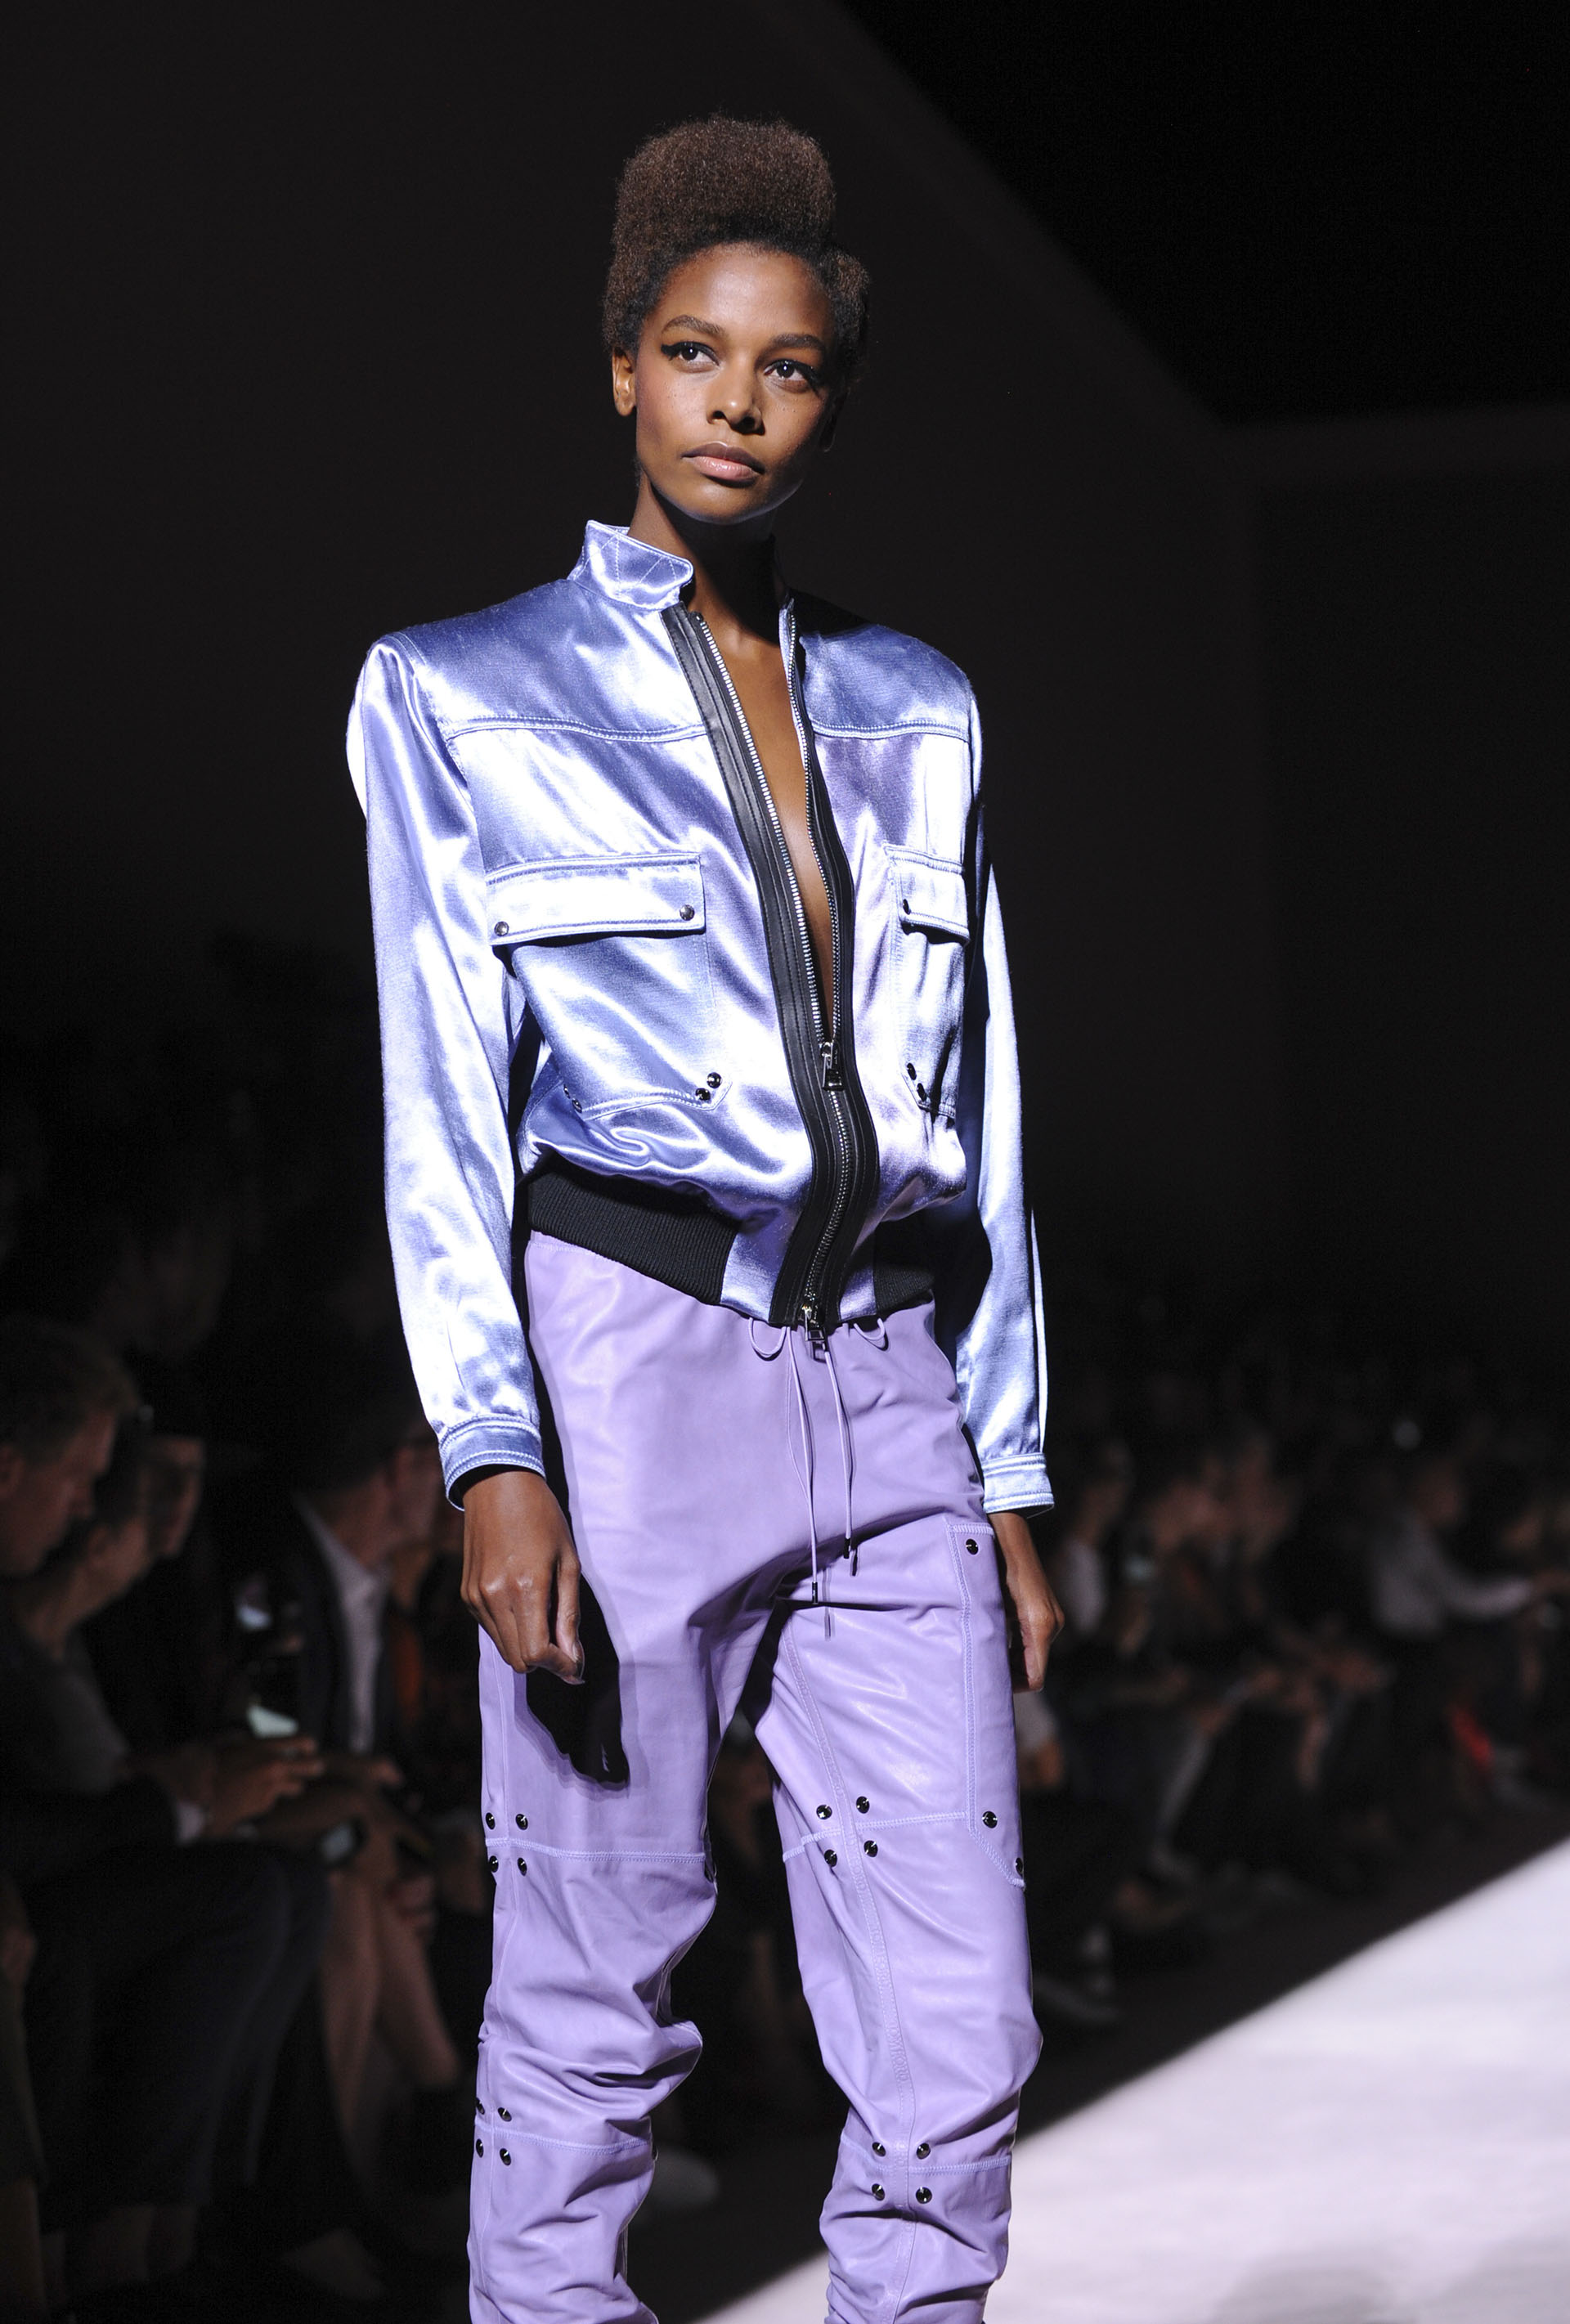 Resumen fashionista del New York Fashion Week: colores vivos, blanco ...